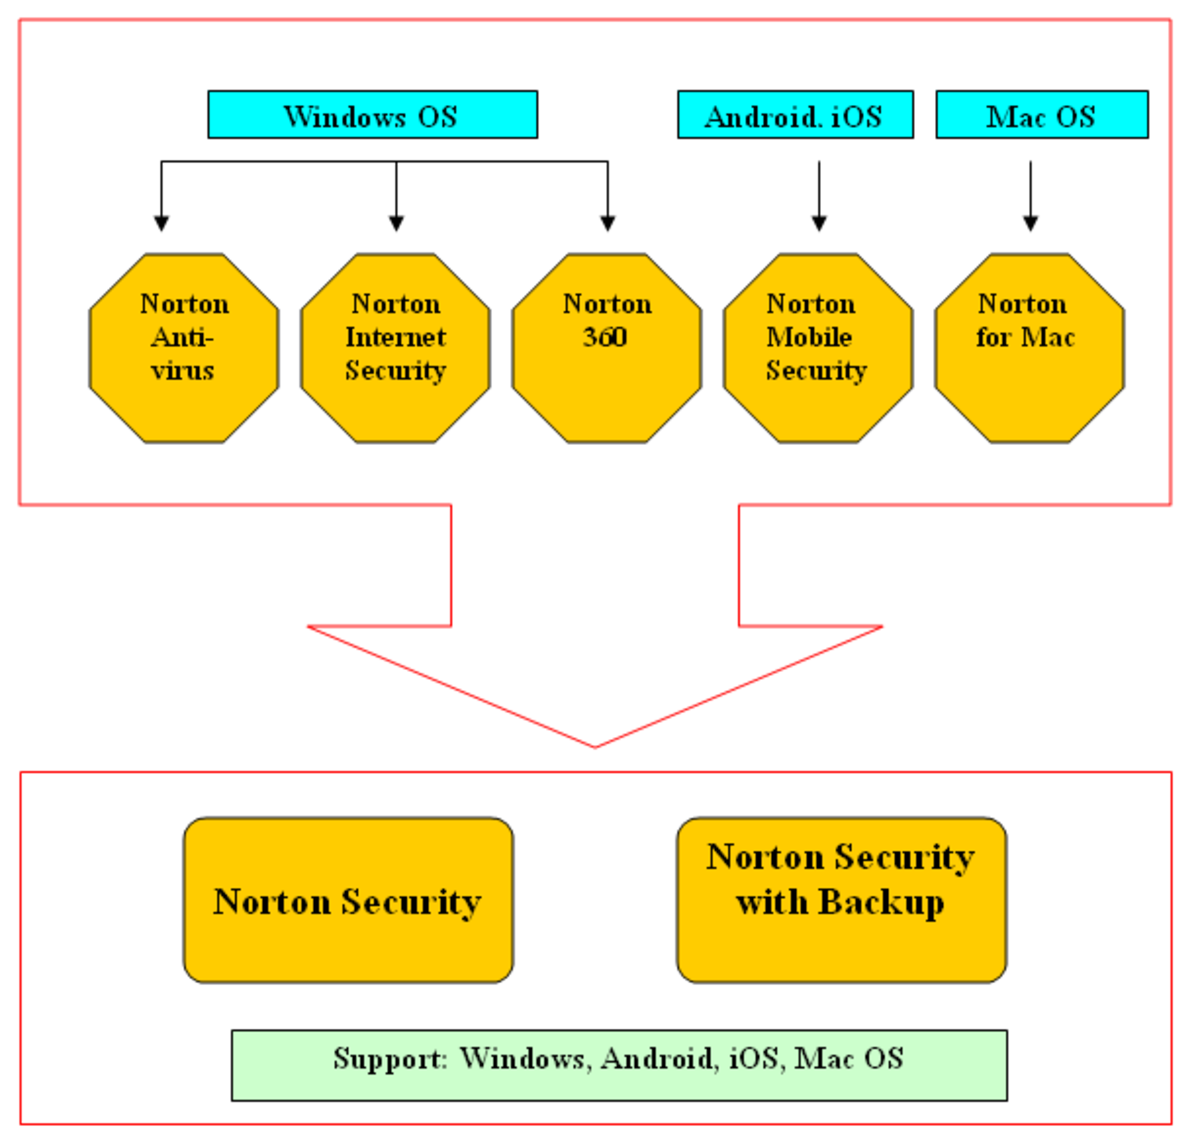 Norton Security is a replacement for Norton Antivirus, Norton Antivirus for Mac, Norton Internet Security, Norton 360, and Norton Mobile Security.